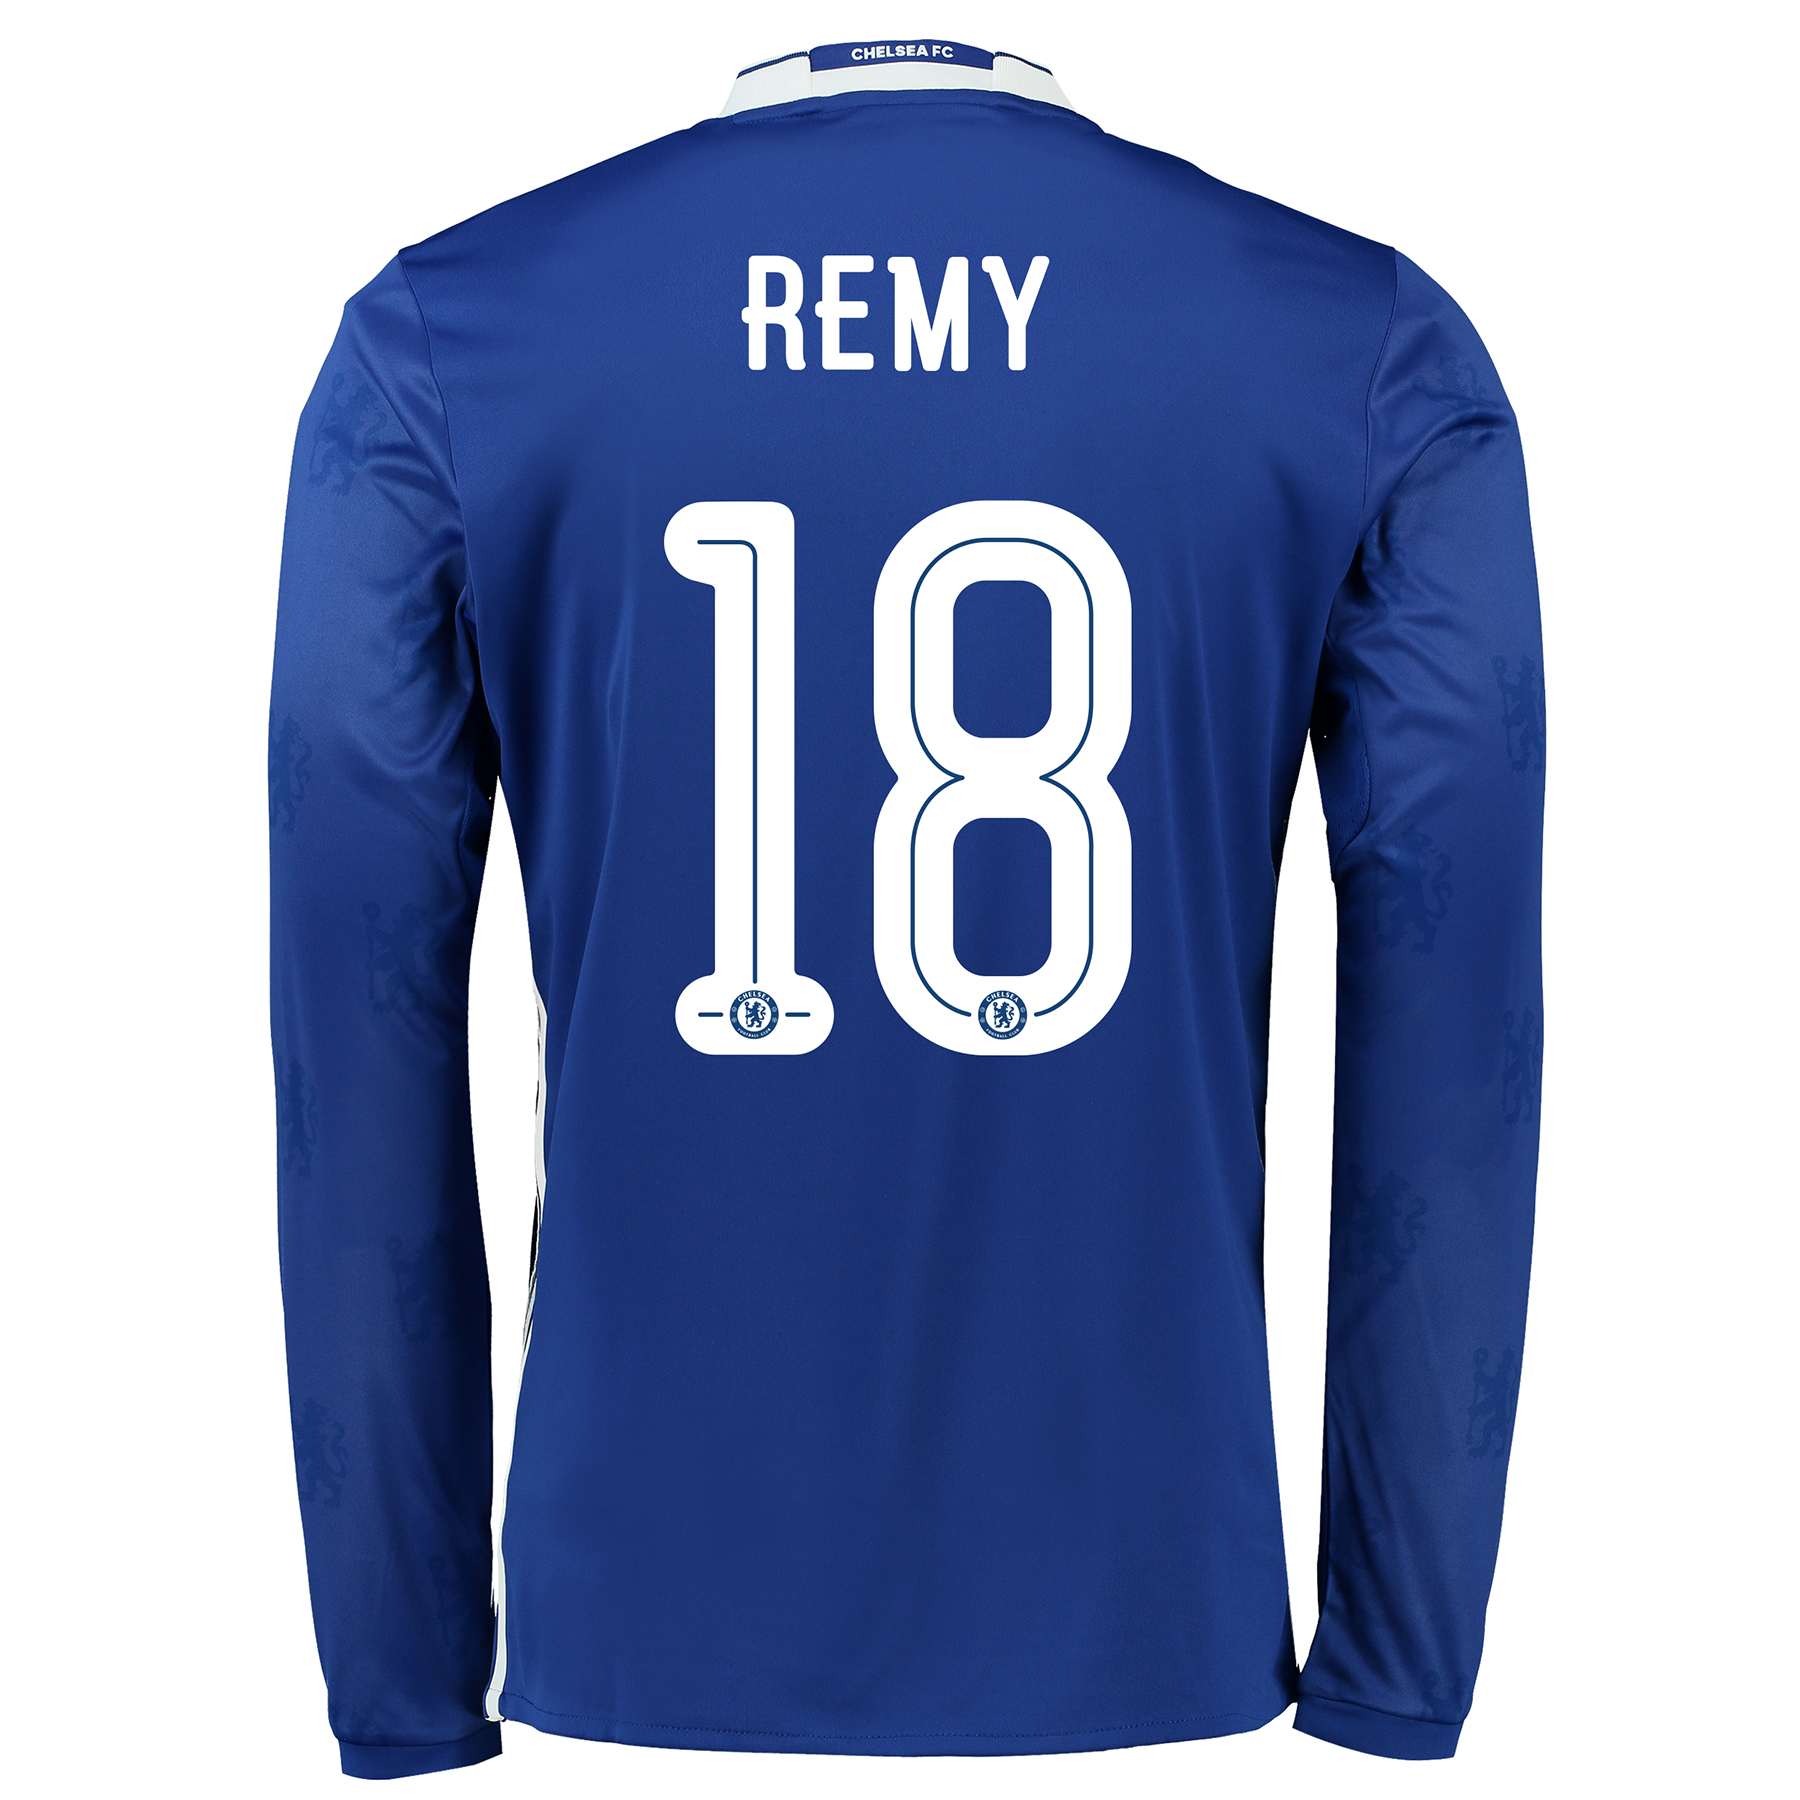 Chelsea Linear Home Shirt 2016-17 - Kids - Long Sleeve with Remy 18 pr